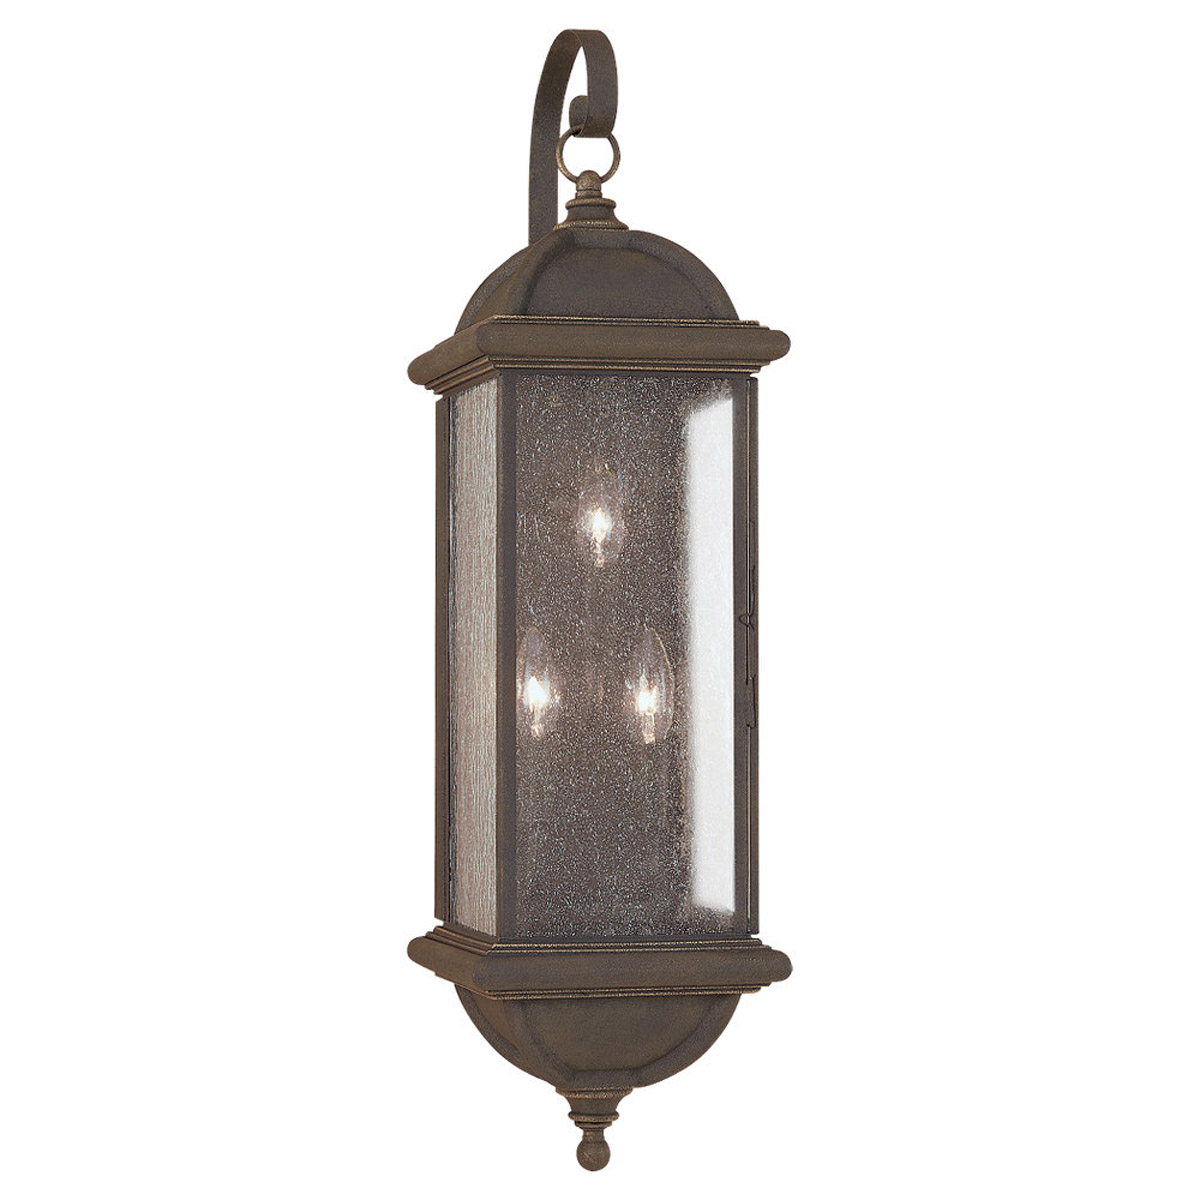 Sea Gull Lighting Charleston 3 Light Outdoor Wall Lantern in Gold Patina 8846-85